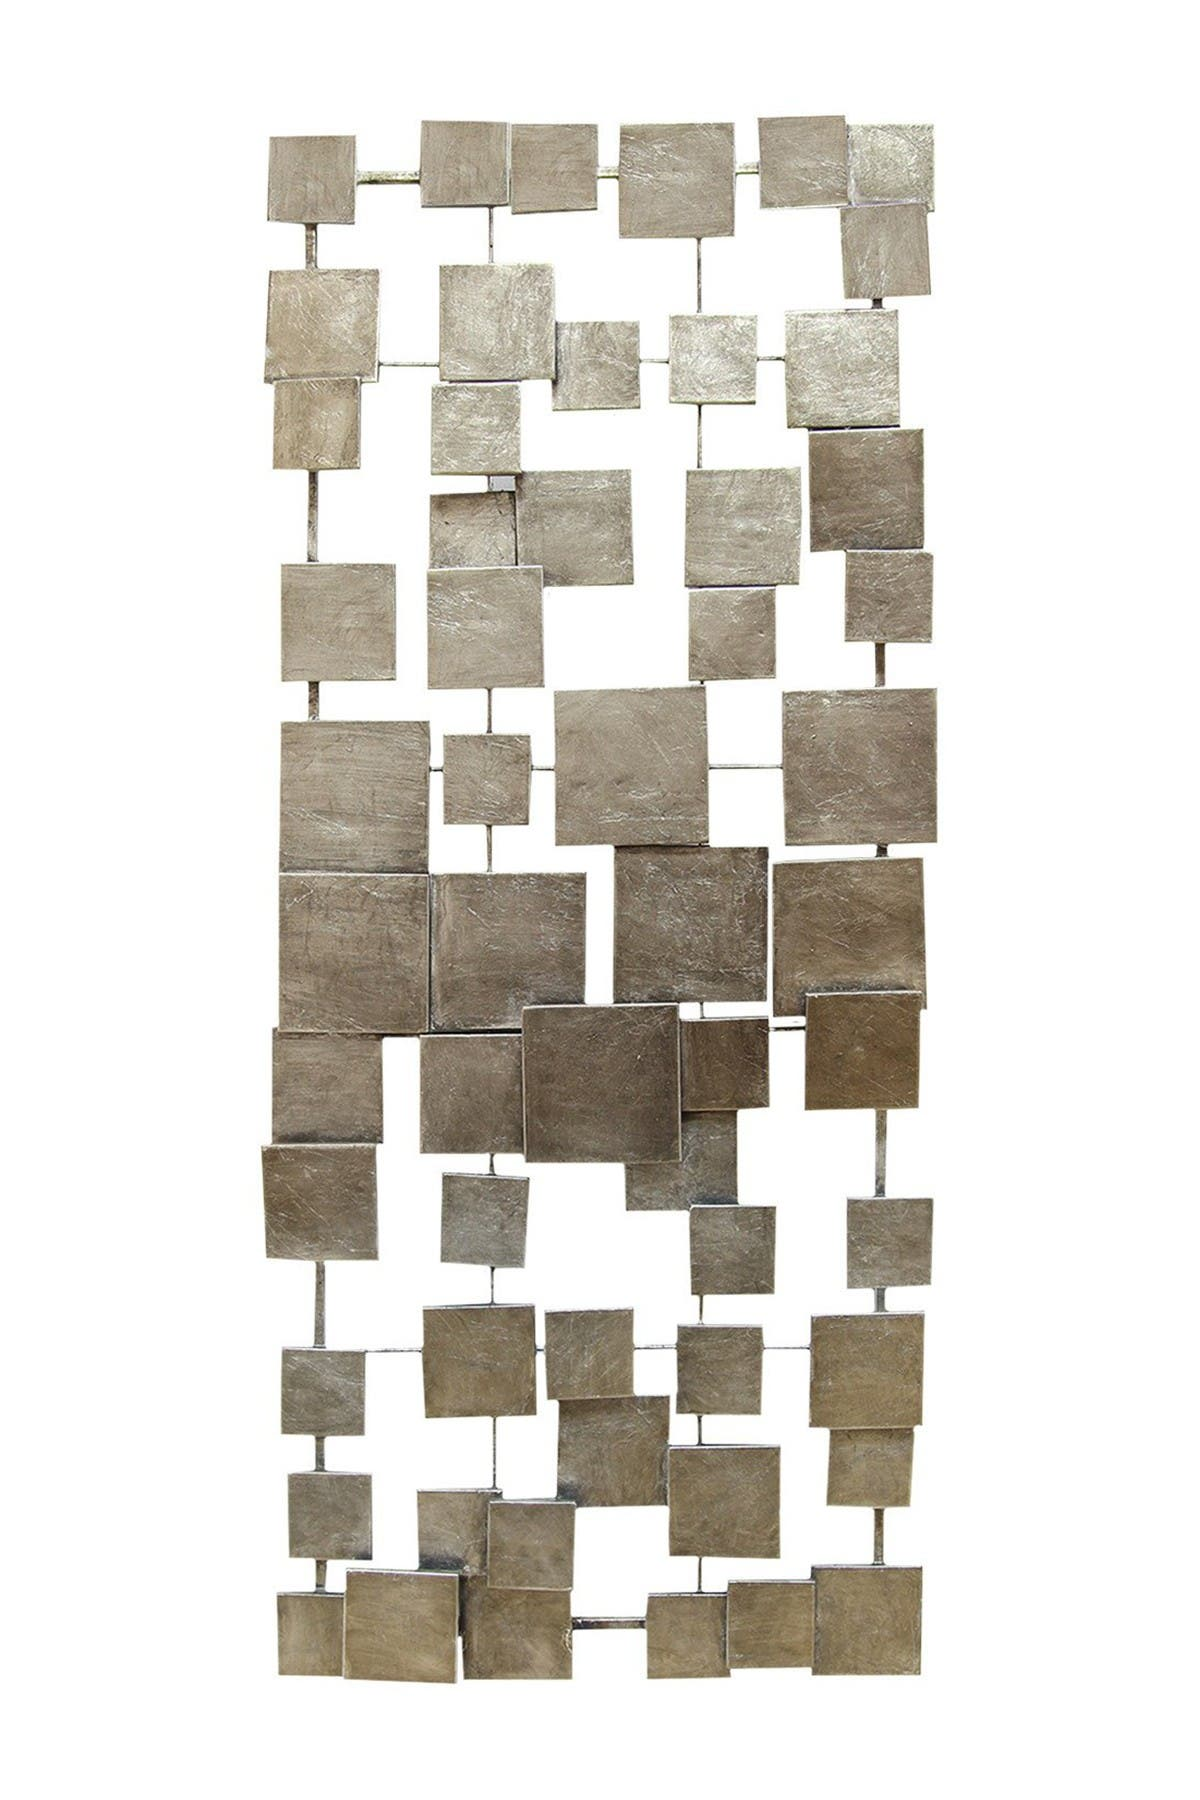 Image of Stratton Home Champagne Geometric Tiles Wall Decor